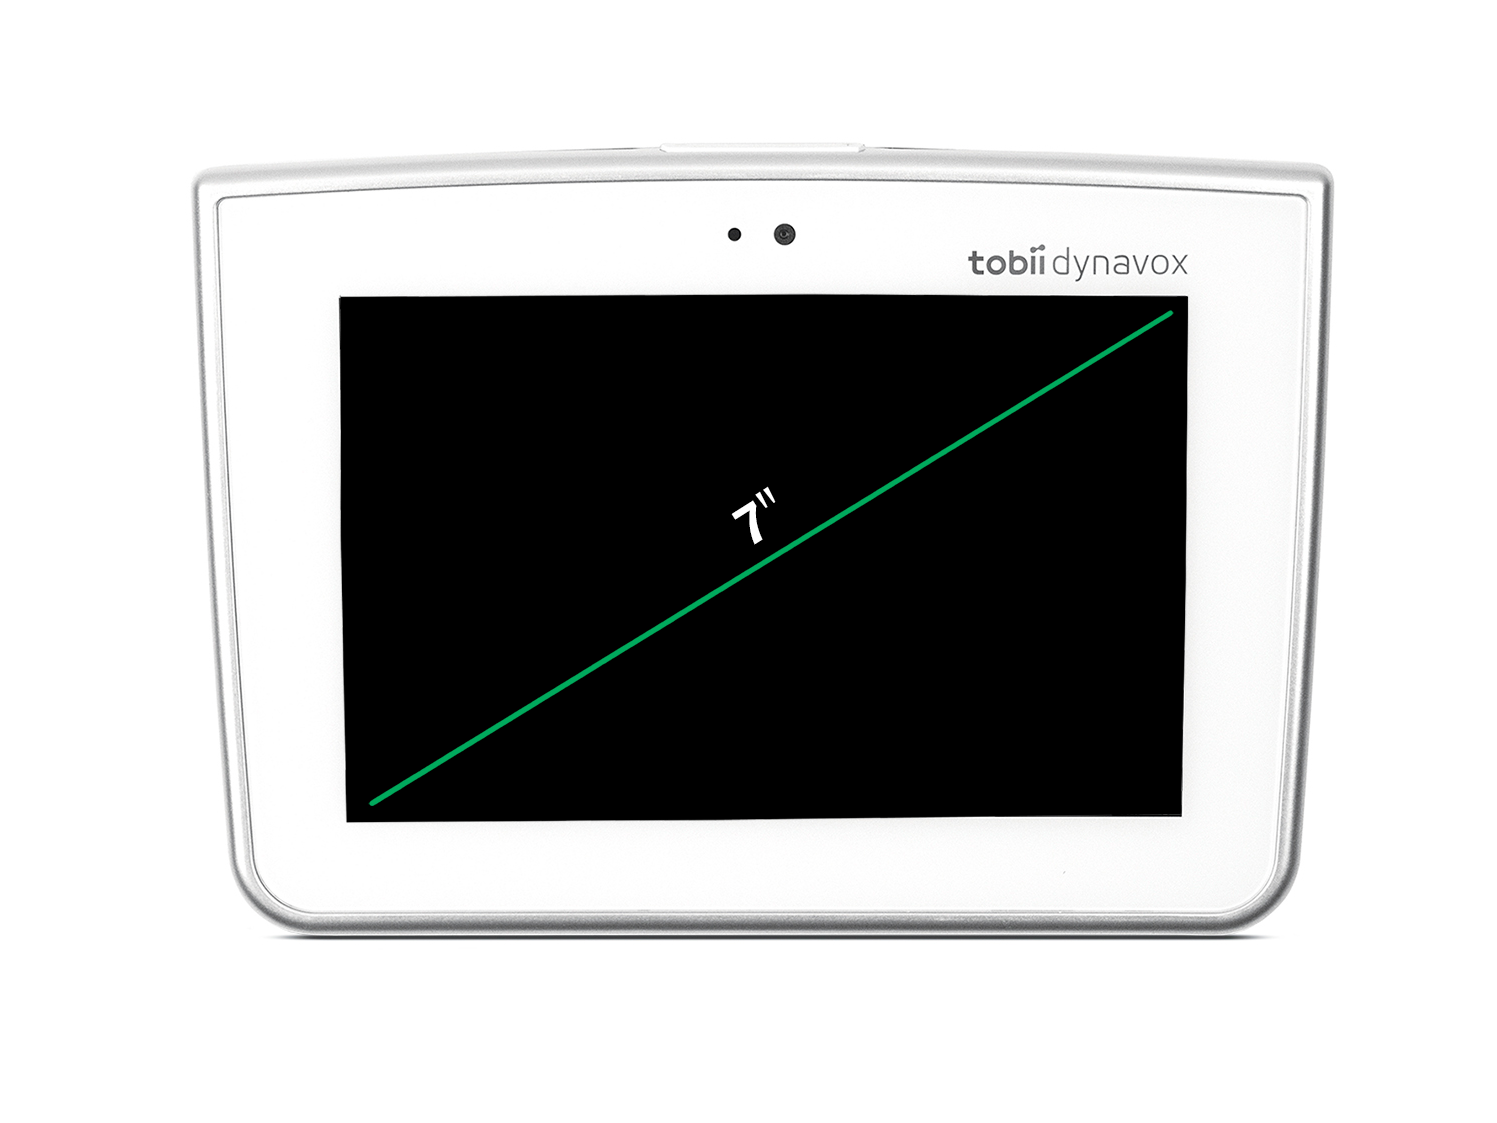 The Tobii Dynavox Indi 7 has a 7inch display